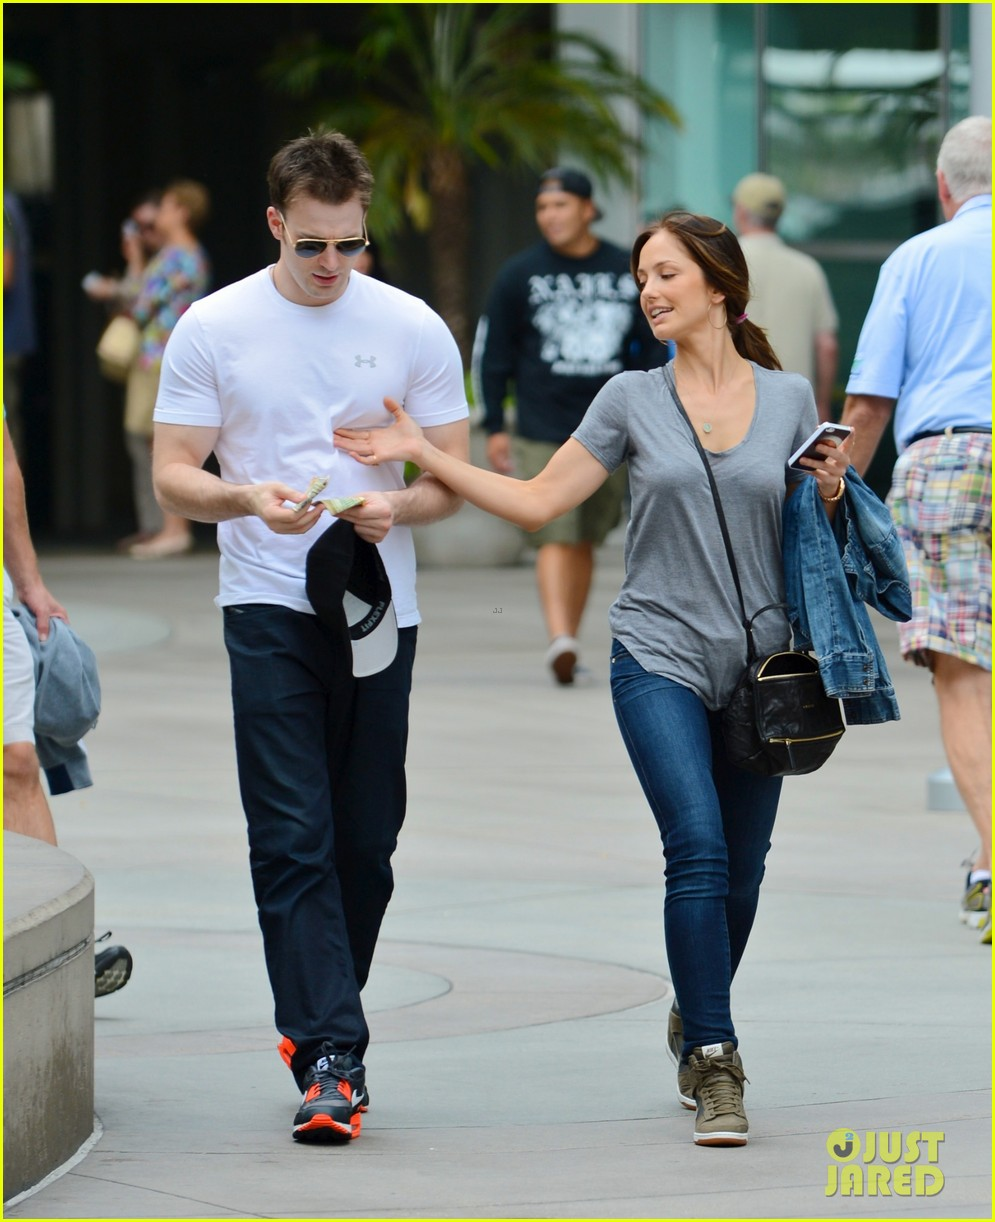 minka kelly grabs chris evans chest at the movies 042904764